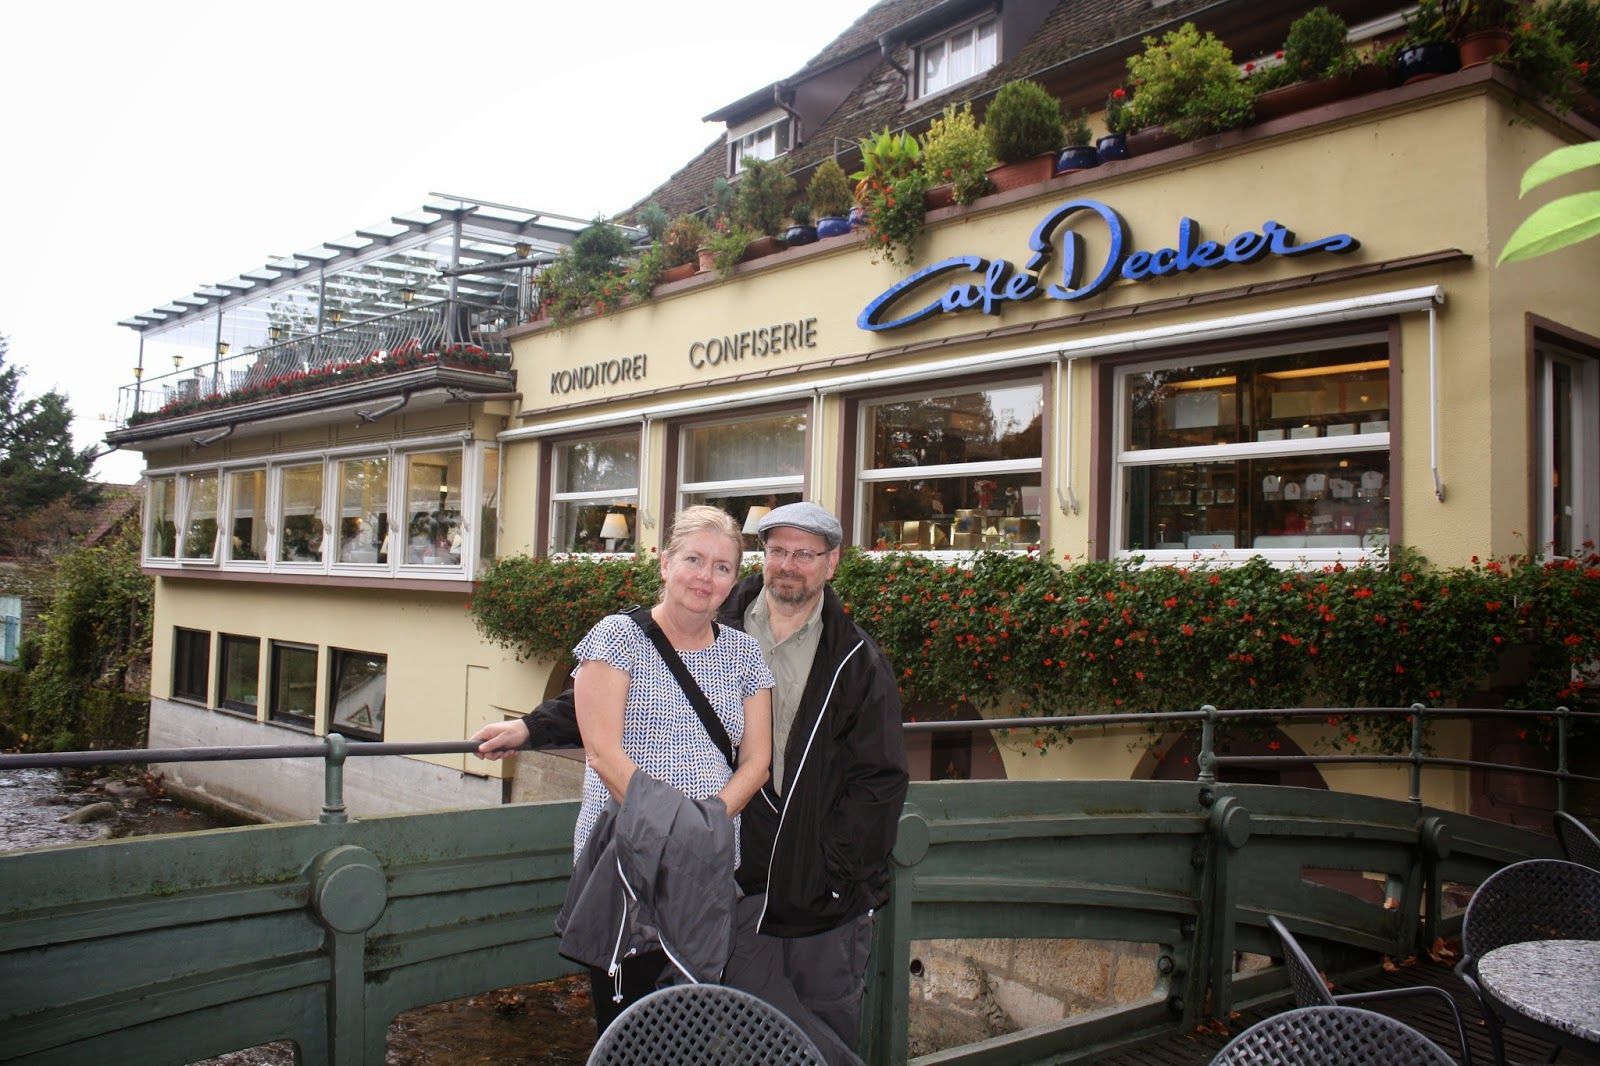 Cafe Decker, Staufen Germany